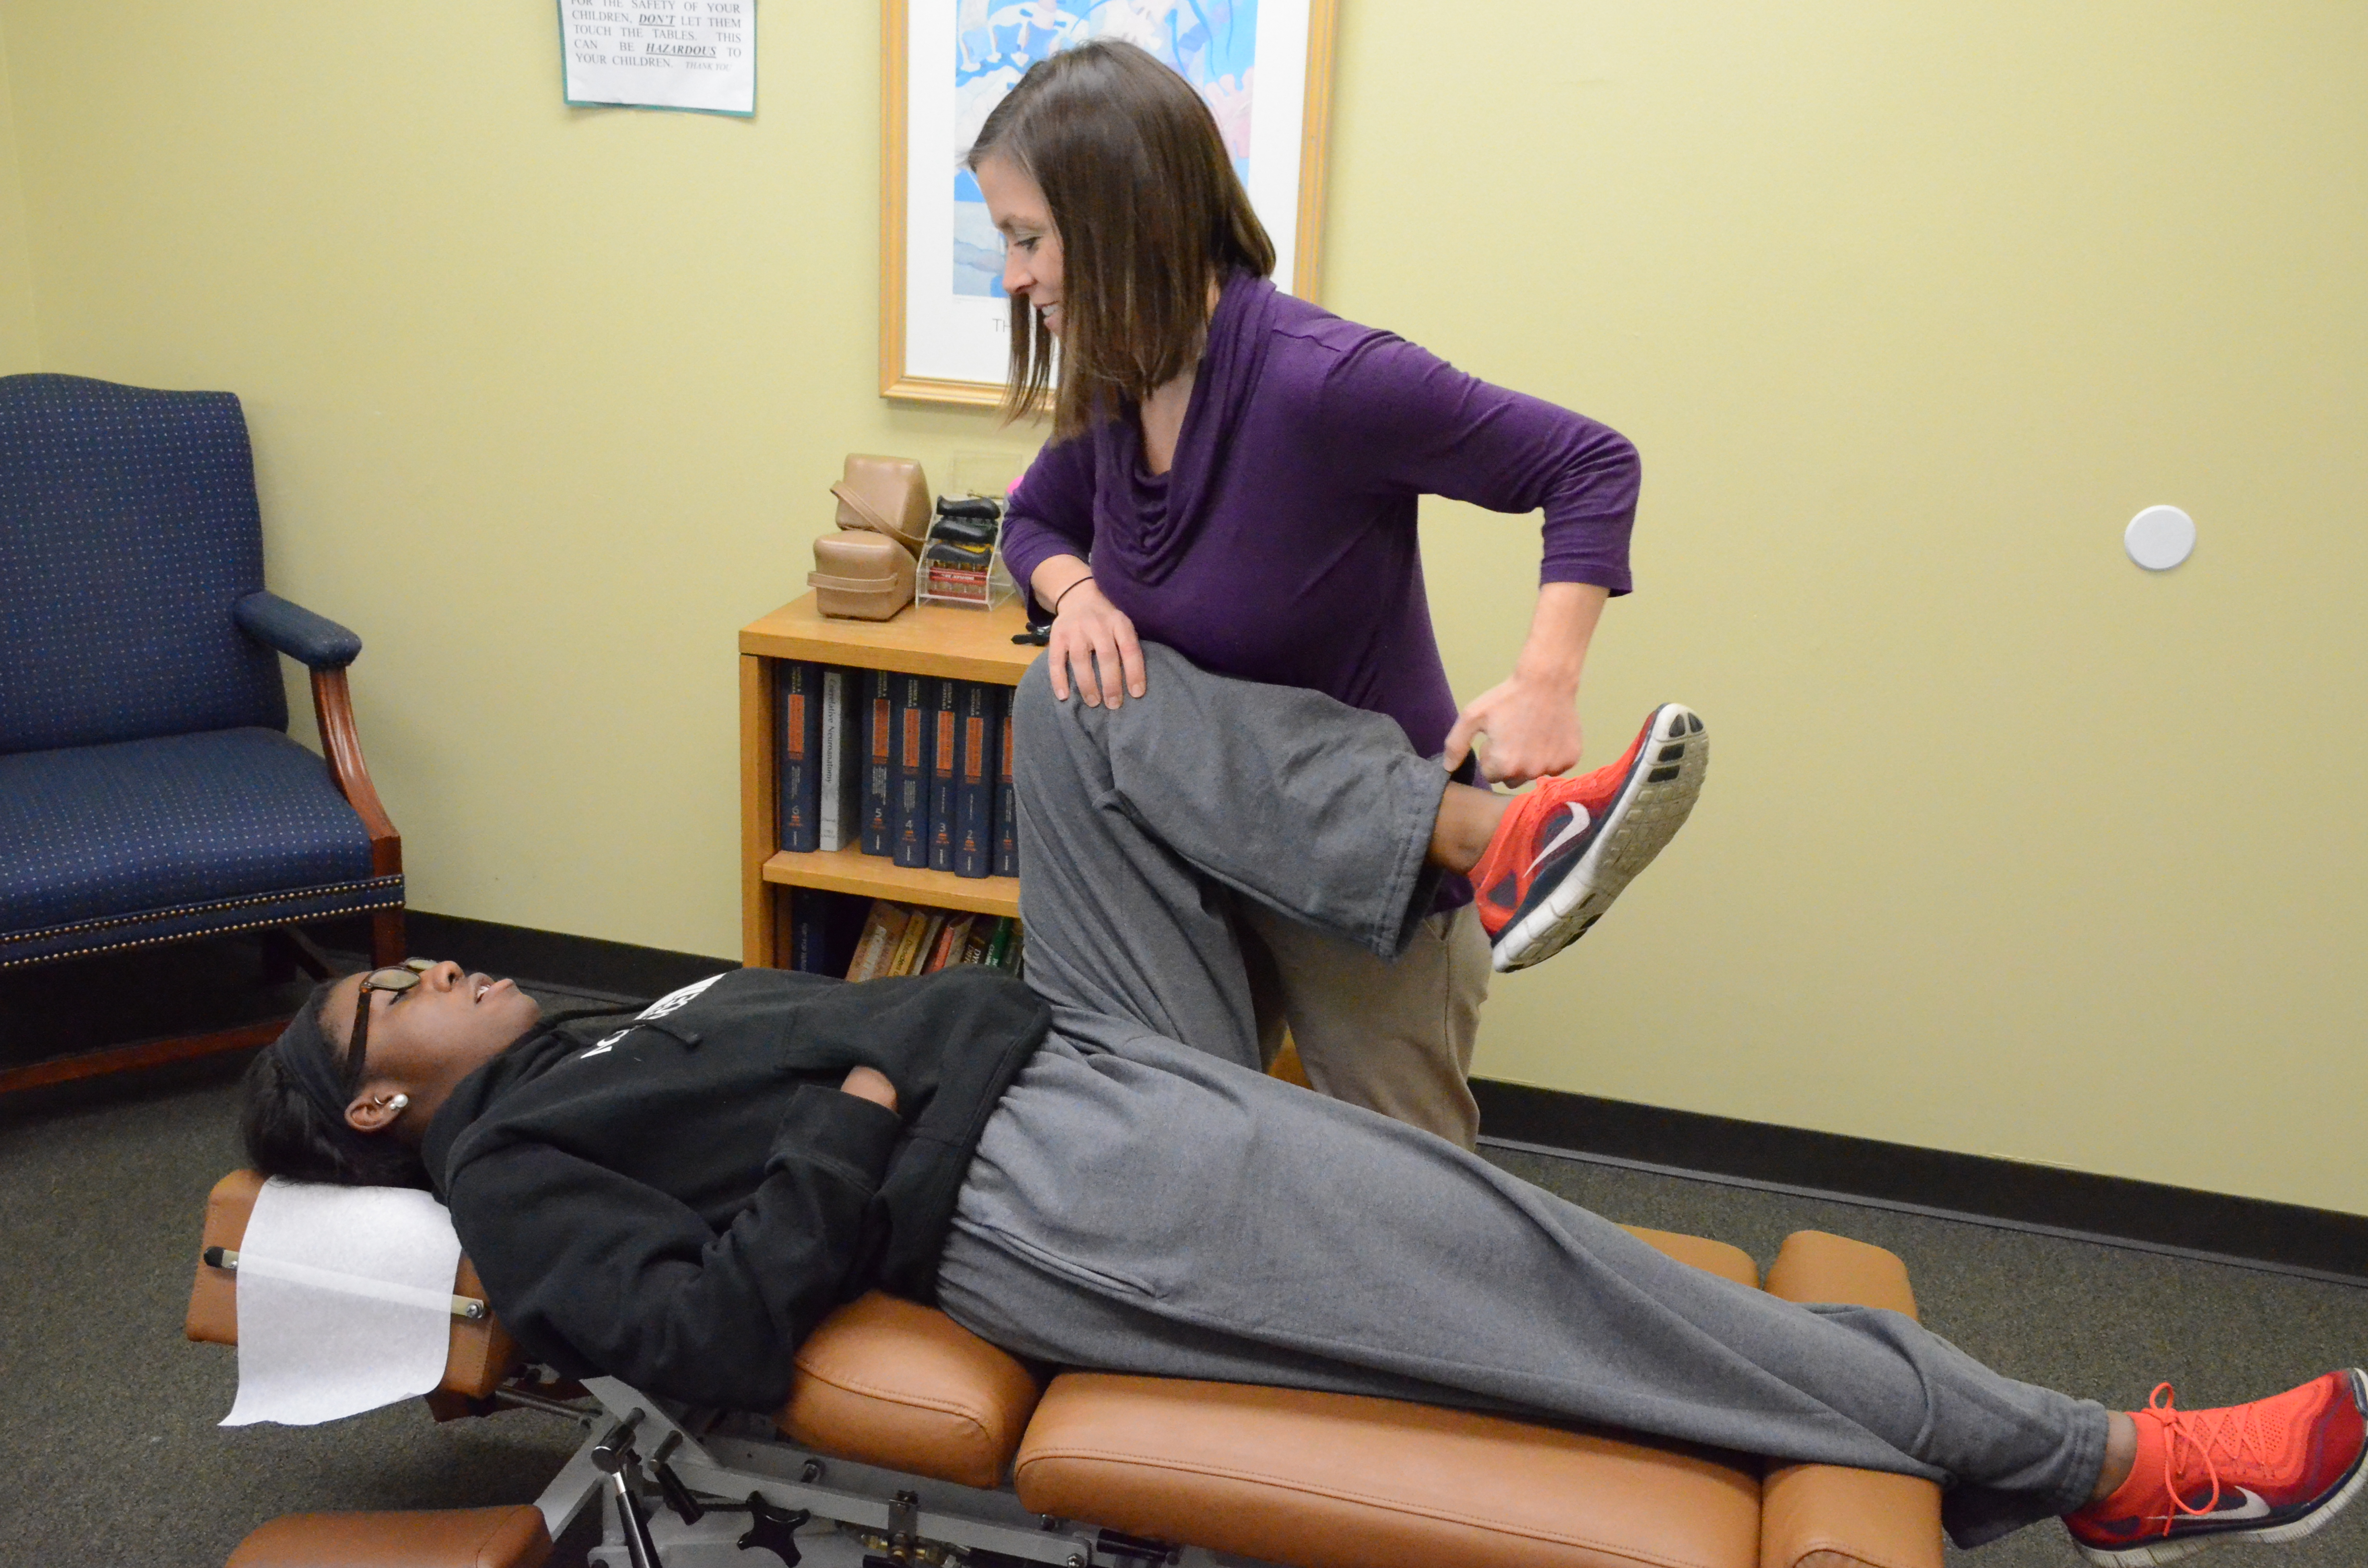 chiropractor adjusting patient's knee on table